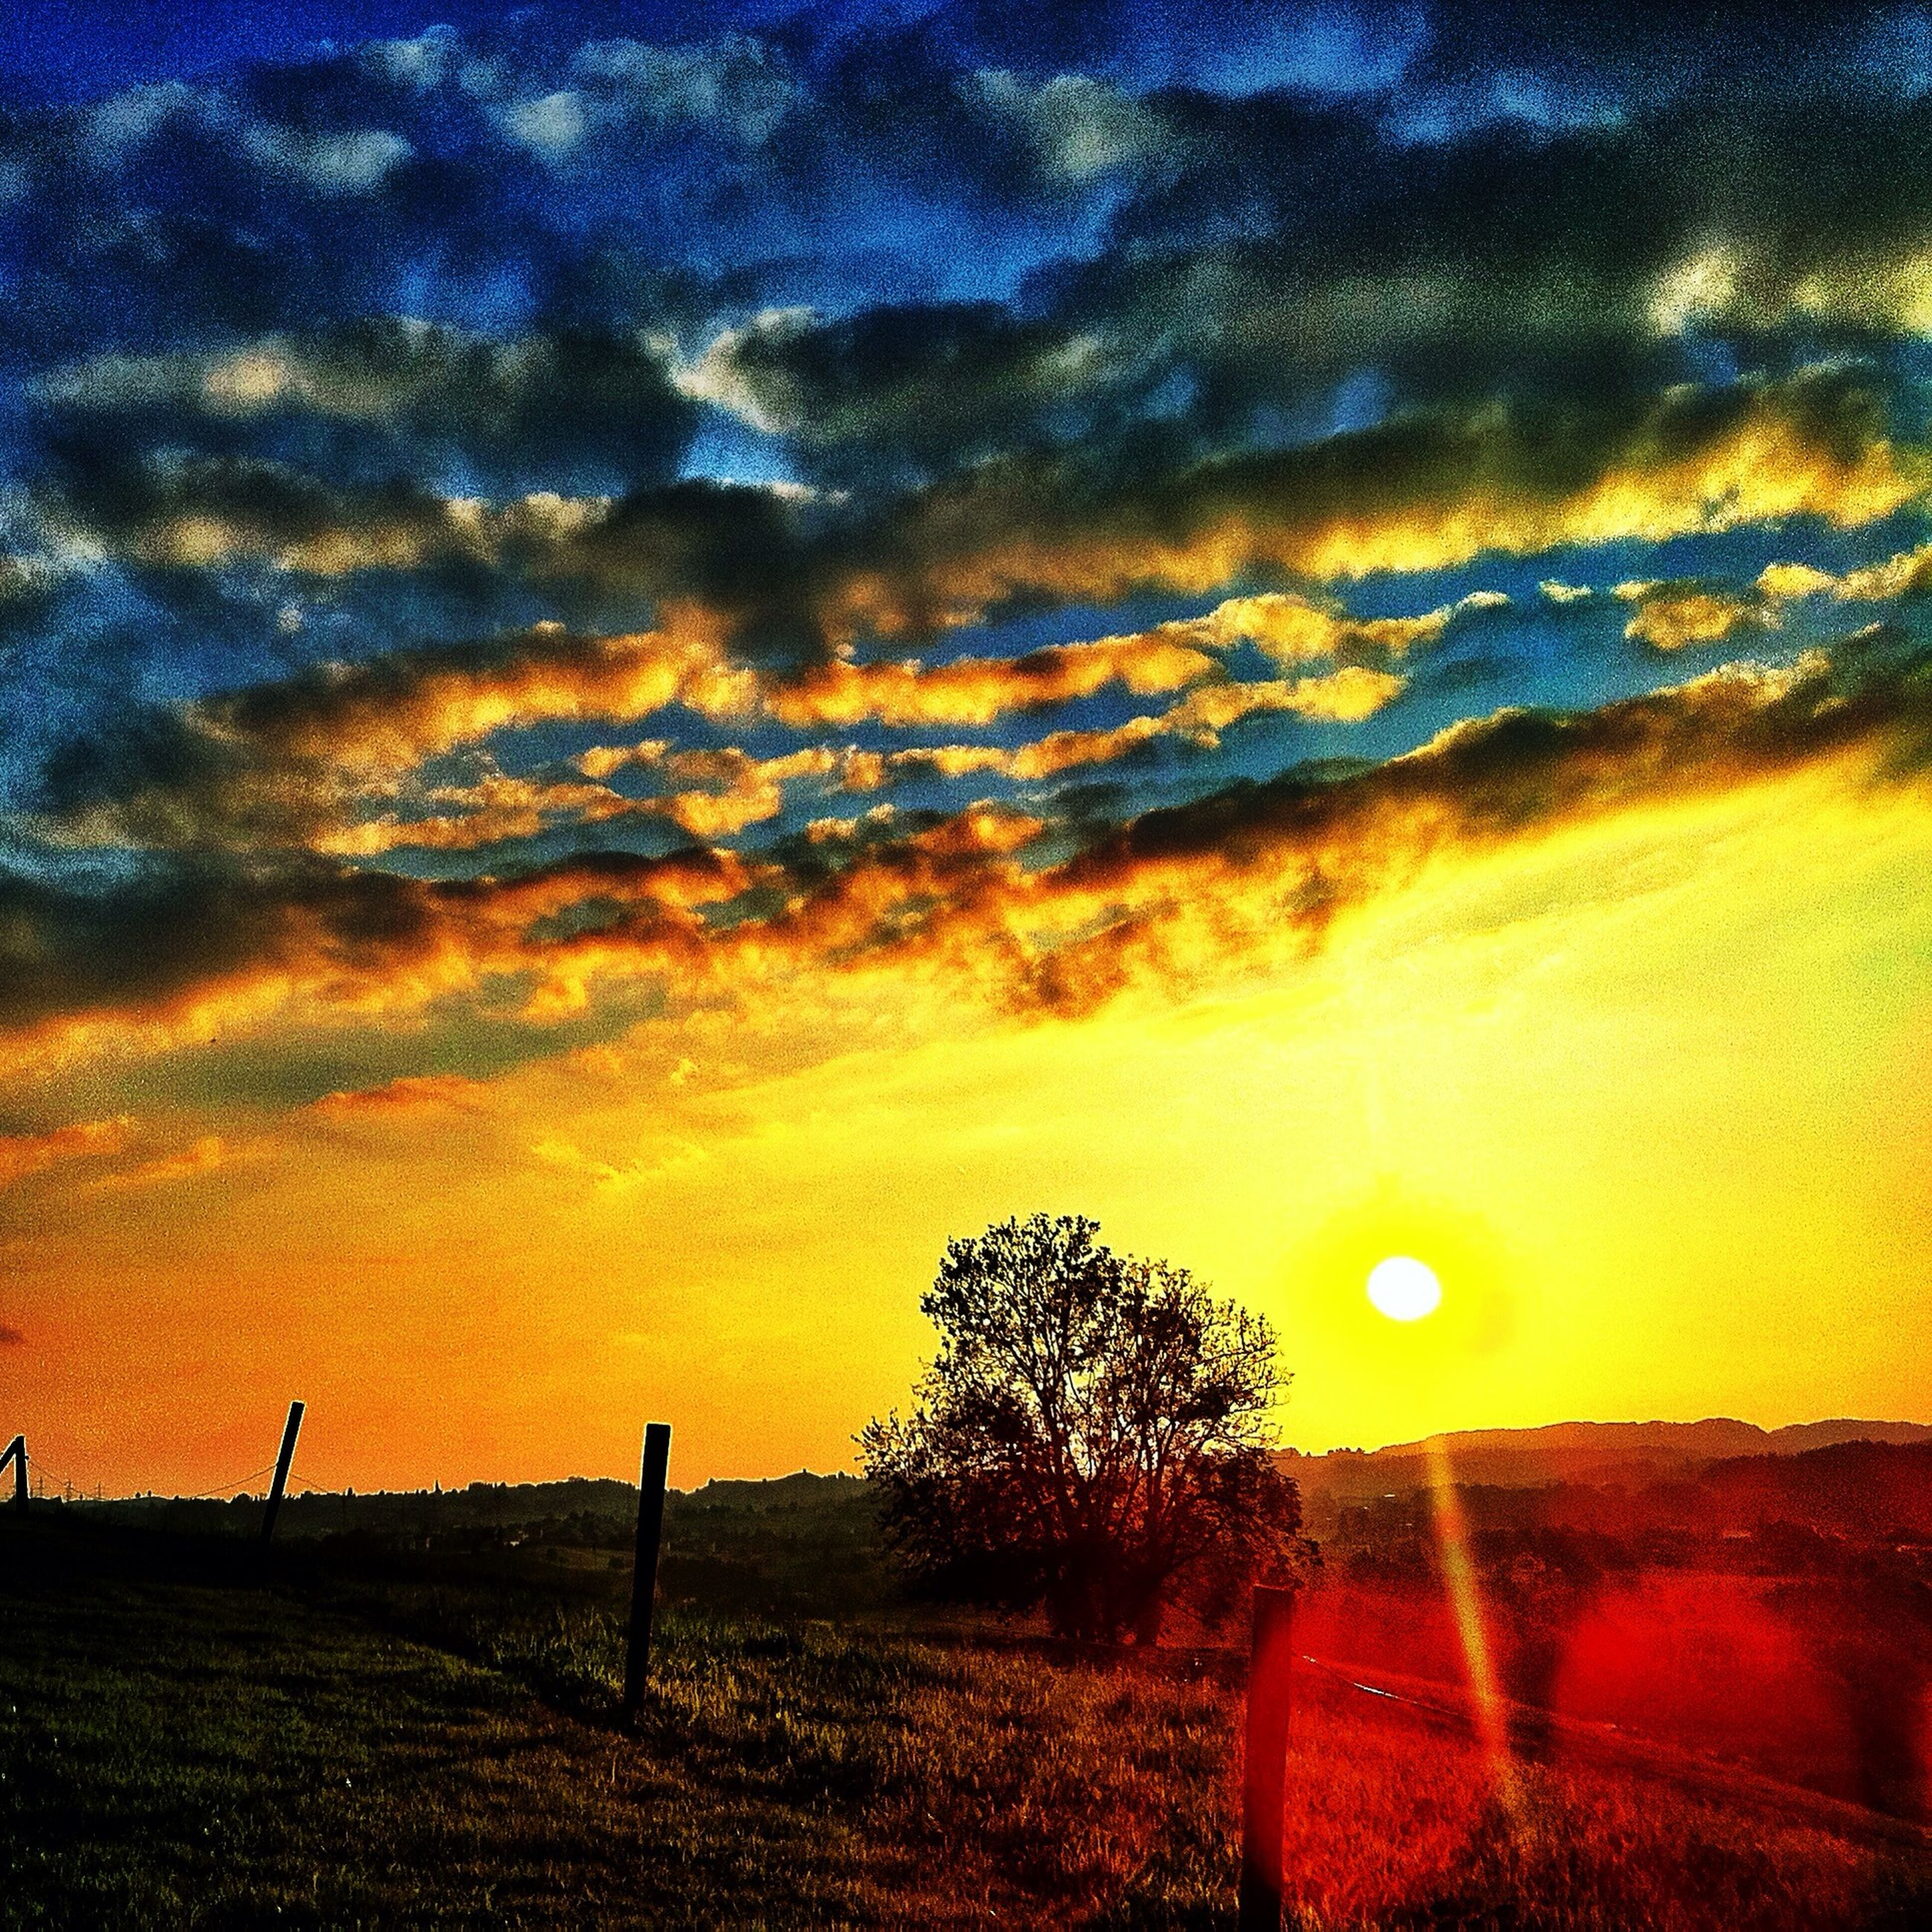 sunset, sky, scenics, tranquil scene, cloud - sky, beauty in nature, tranquility, dramatic sky, orange color, landscape, silhouette, field, nature, idyllic, cloud, cloudy, atmospheric mood, moody sky, tree, outdoors